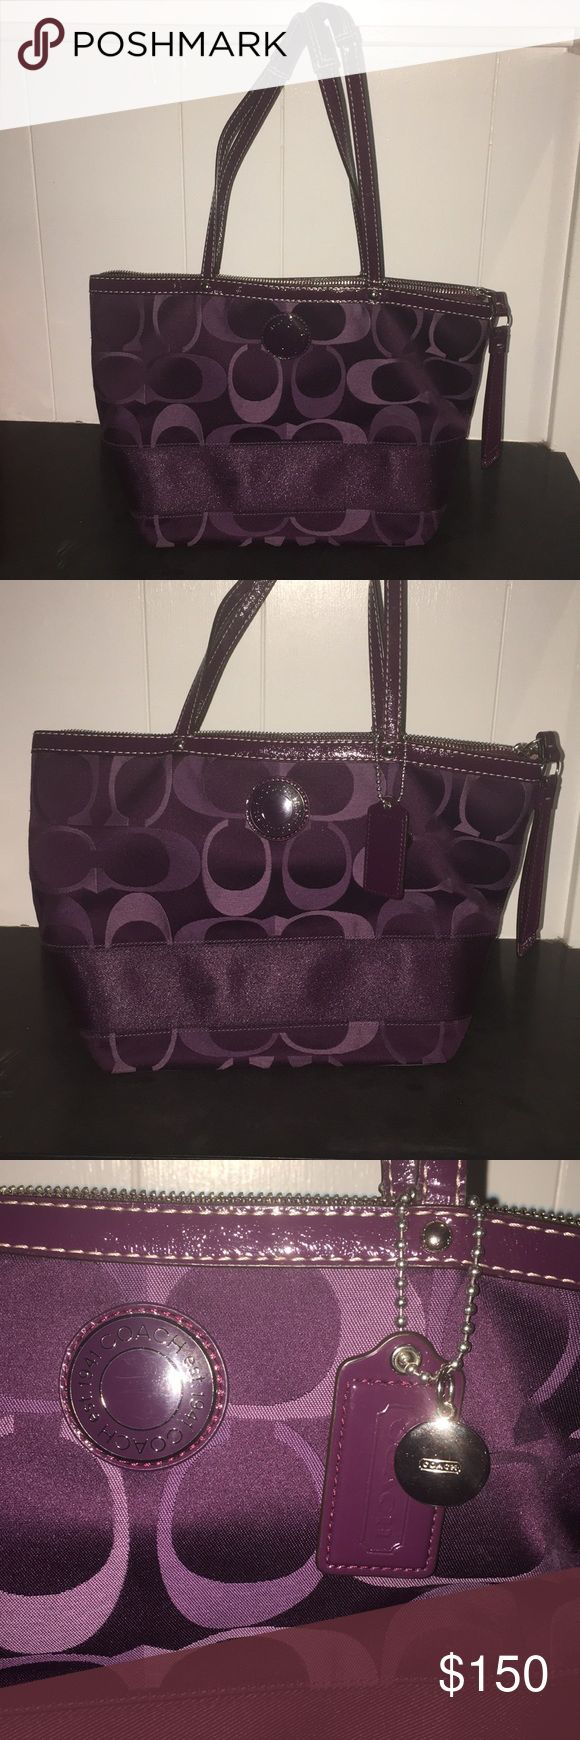 Perfect Condition Coach Tote Used just twice and in perfect condition. The tote is very spacious with a phone holder, and several large pockets on the inside and outside. Price is negotiable! Coach Bags Totes